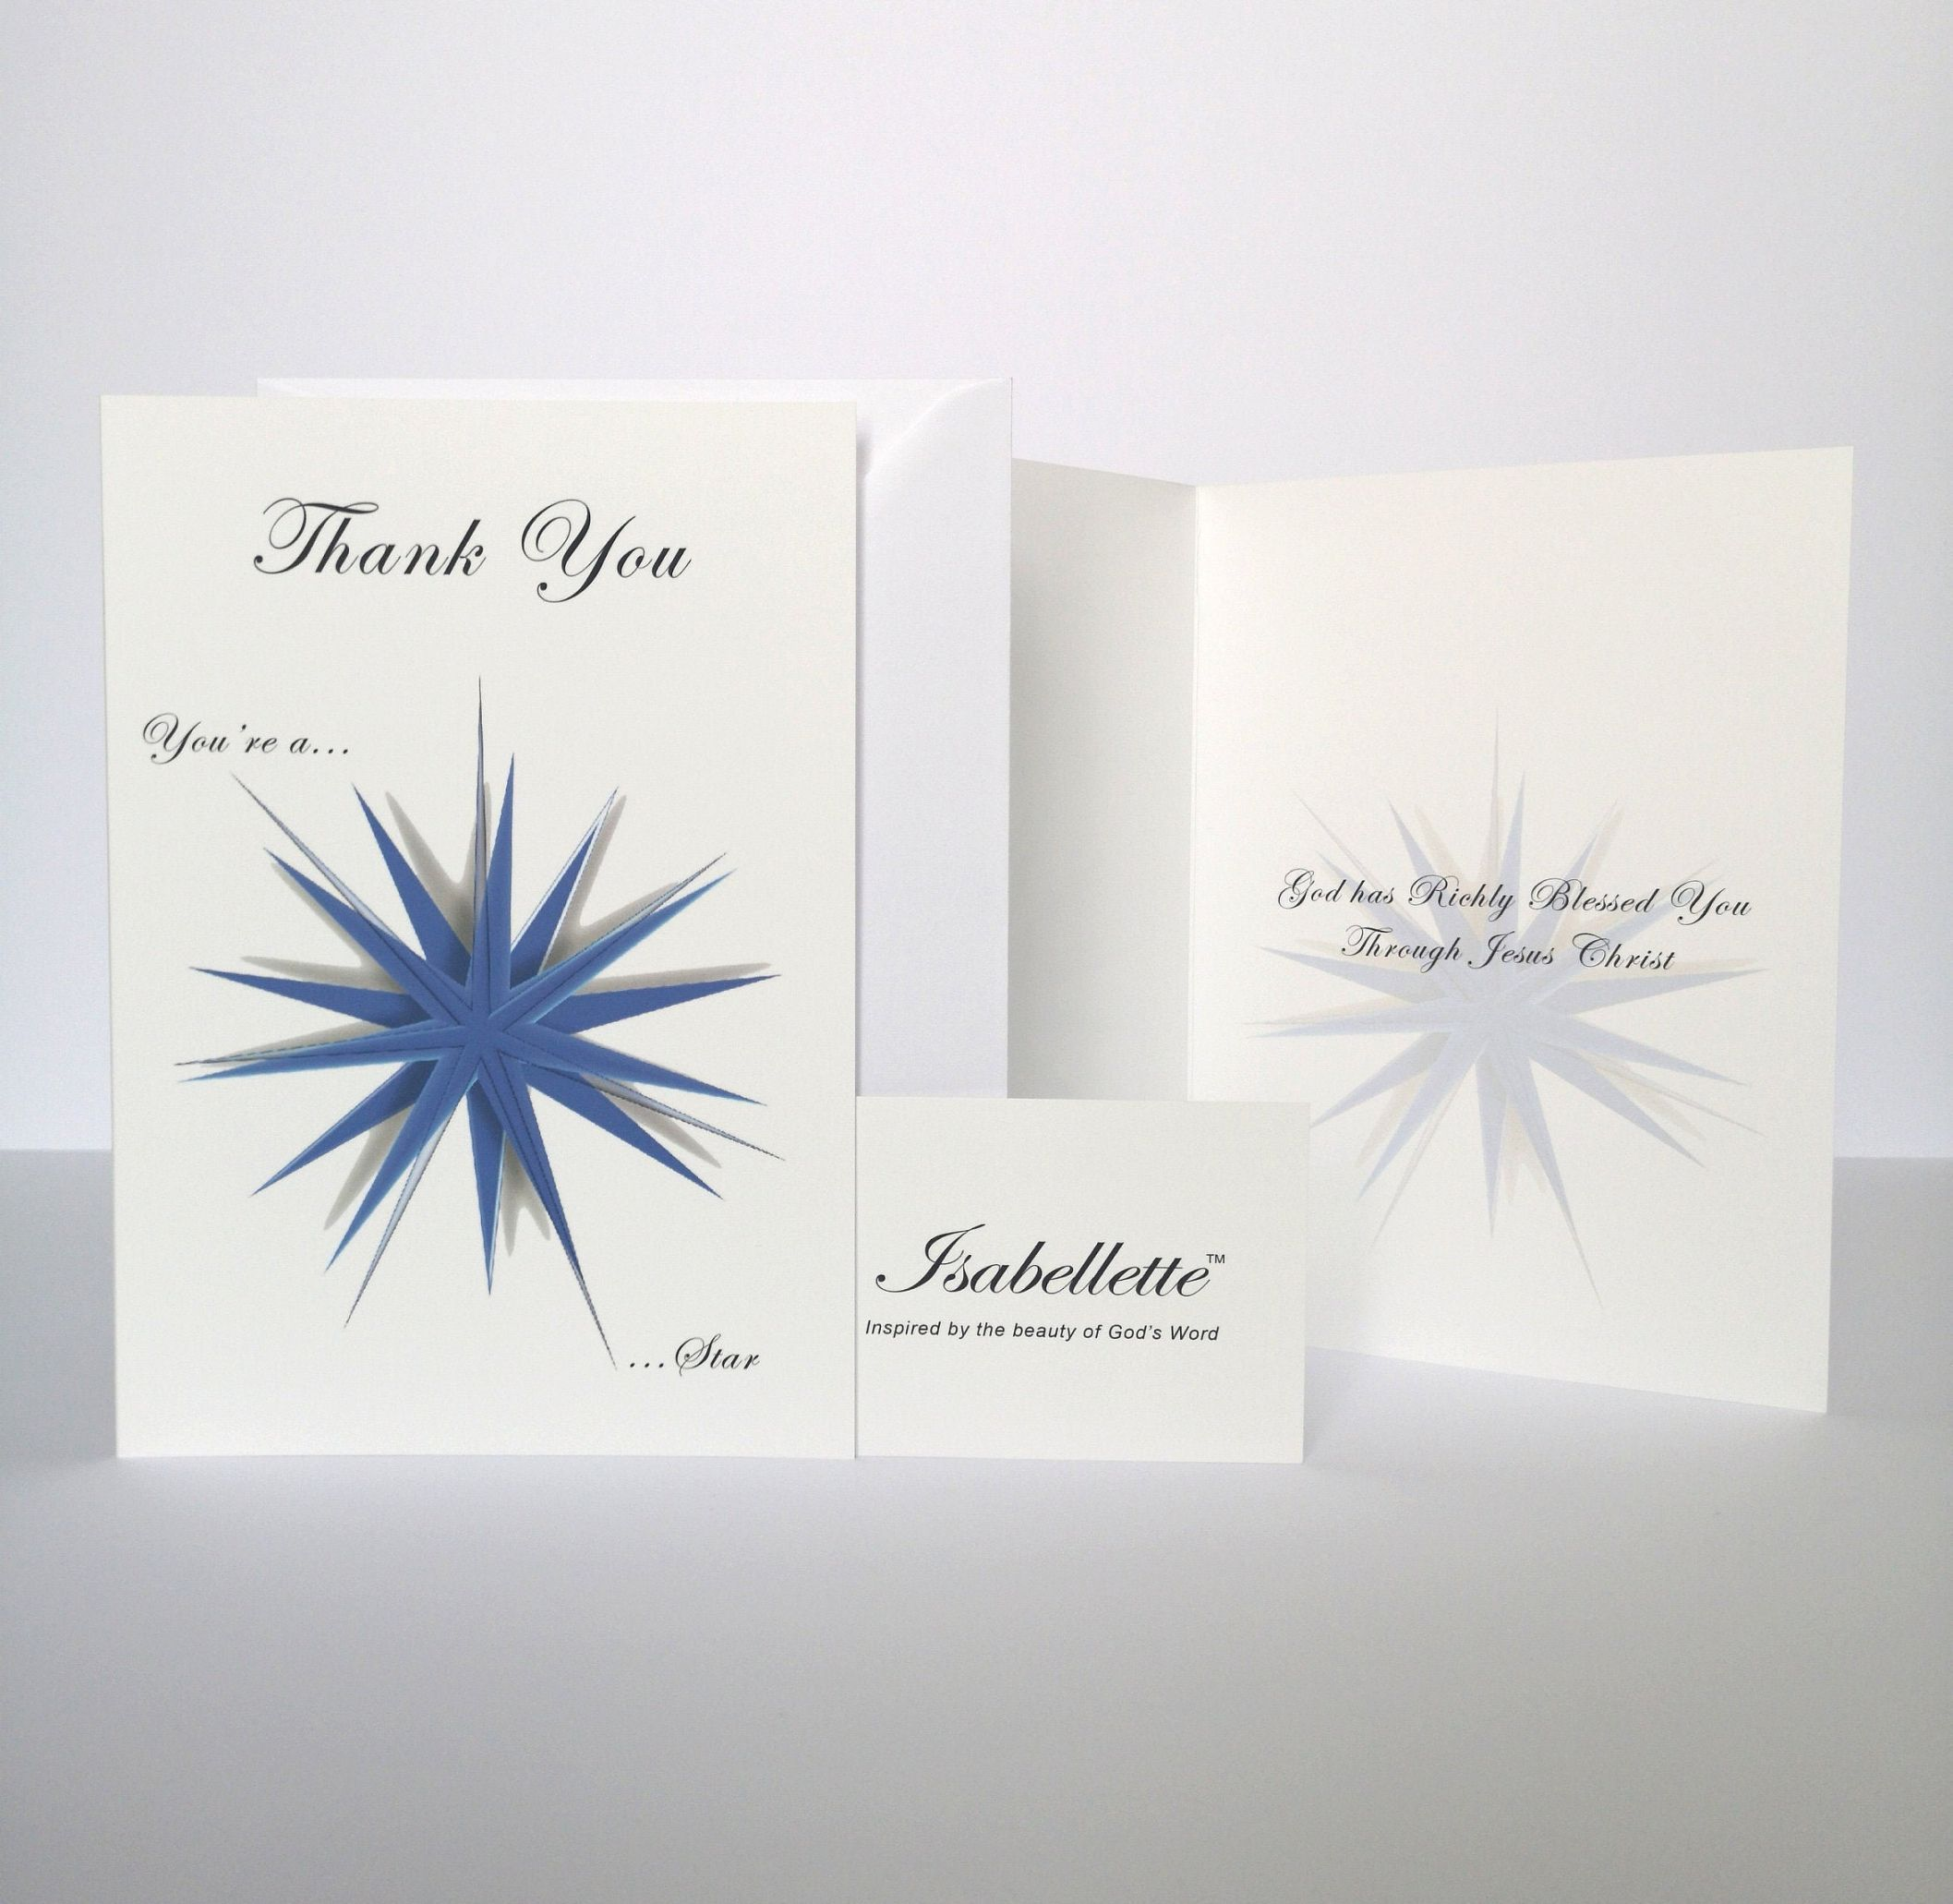 Browse Our Free Christian Thank You Card Thank You Cards Your Cards Cards